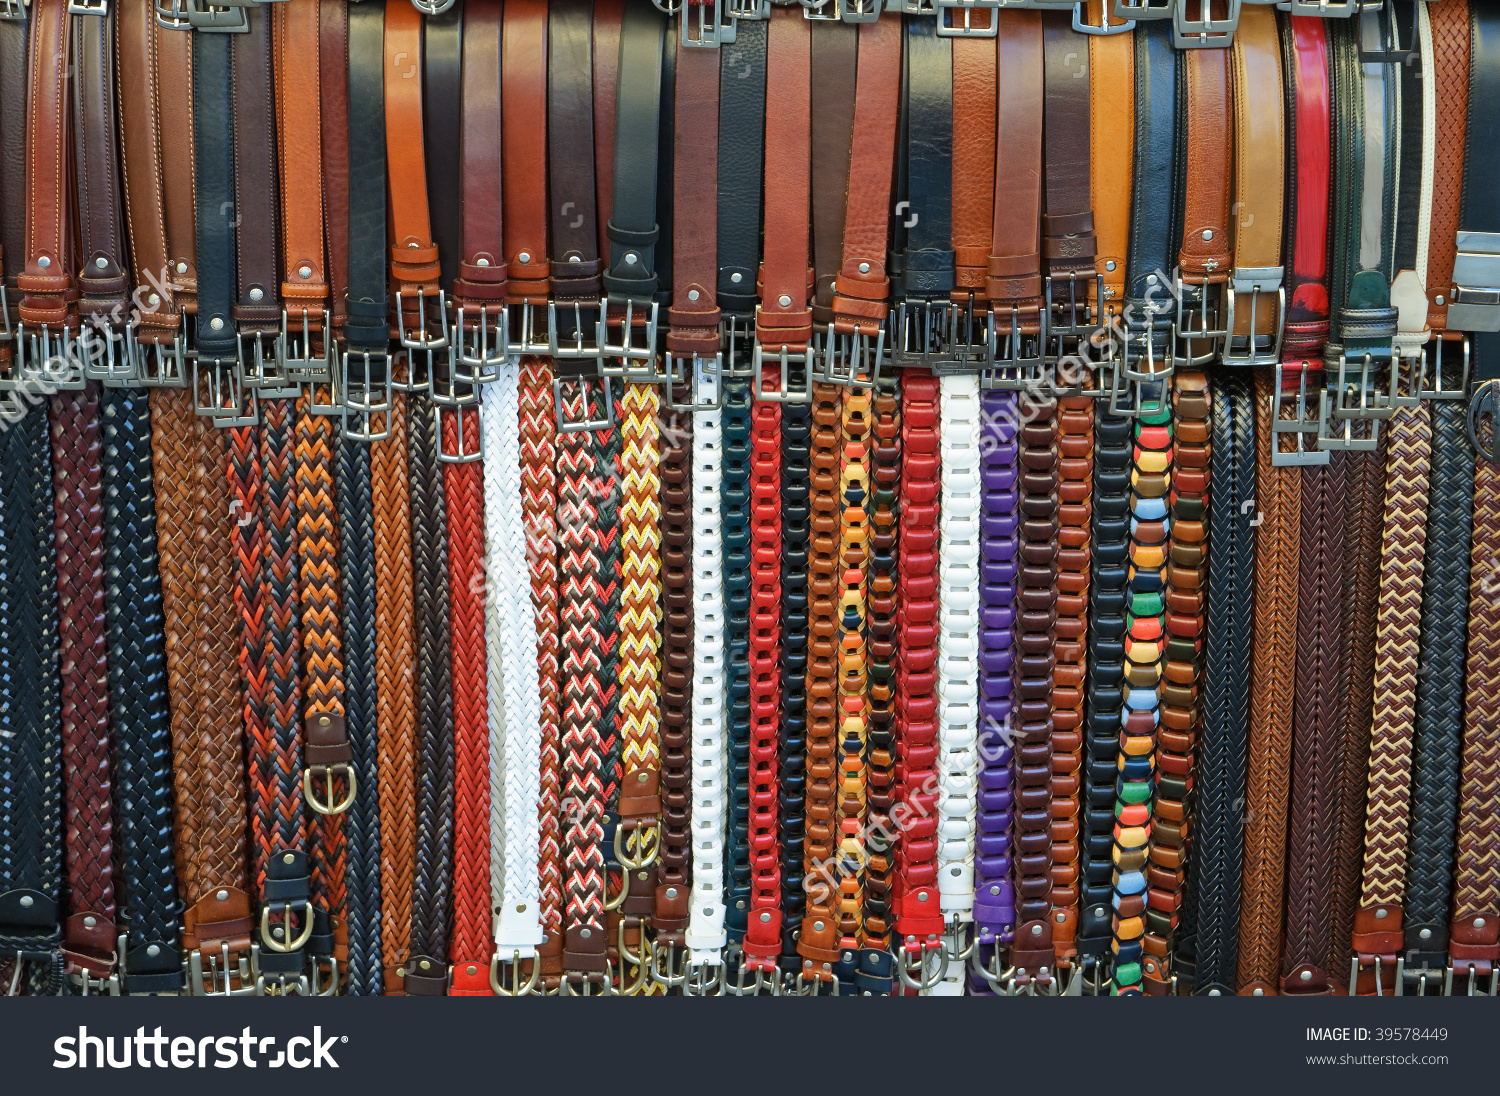 Leather Belts For Sale On Street Market In Florence, Italy Stock.